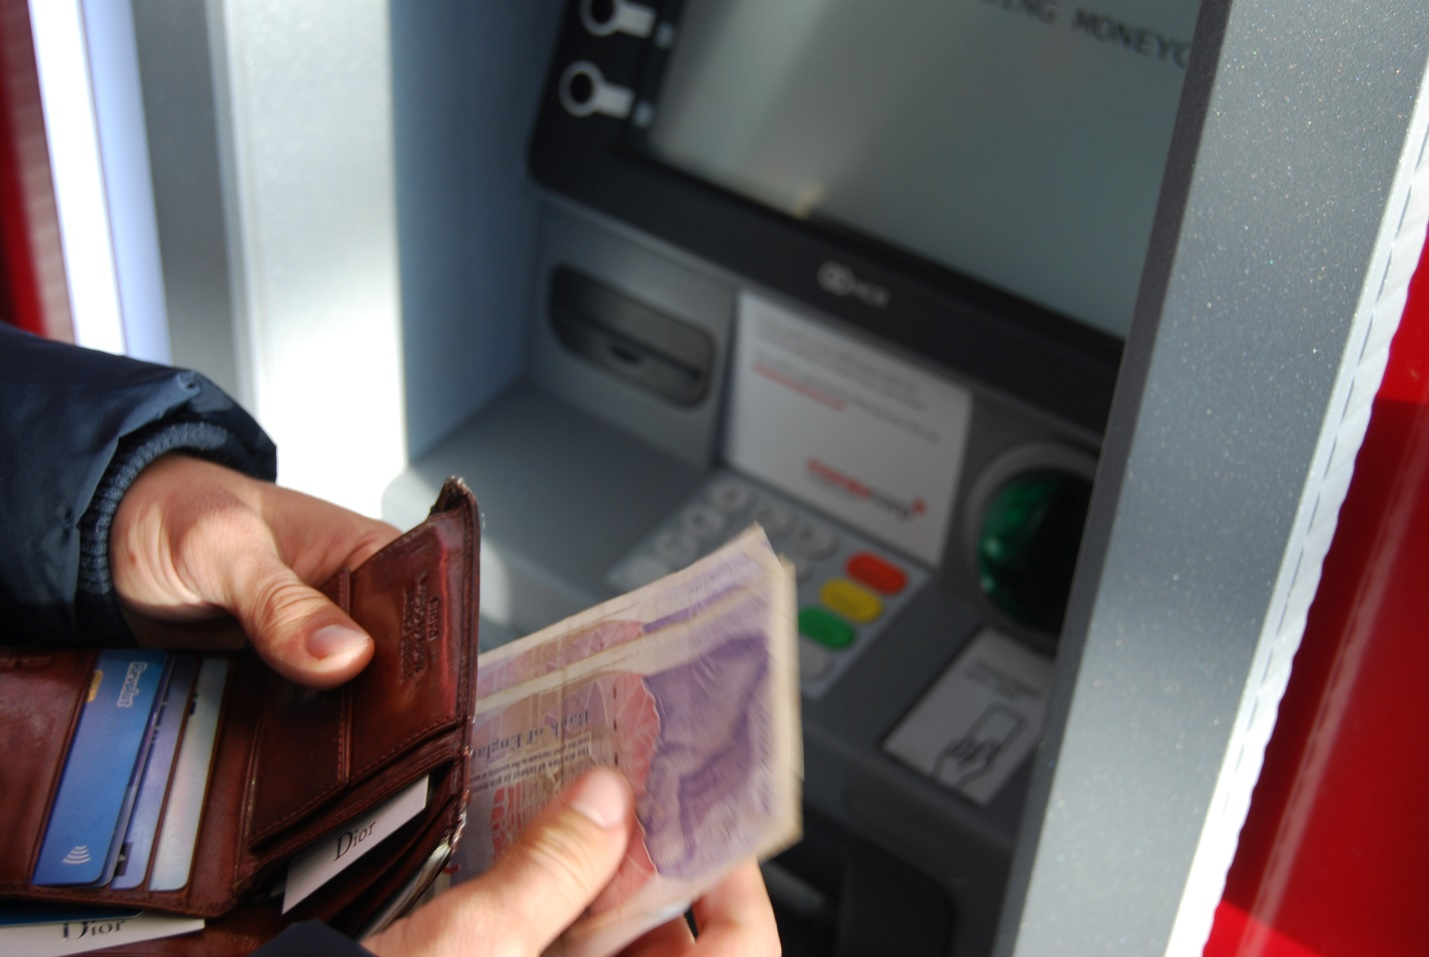 A person depositing money into their account using an ATM